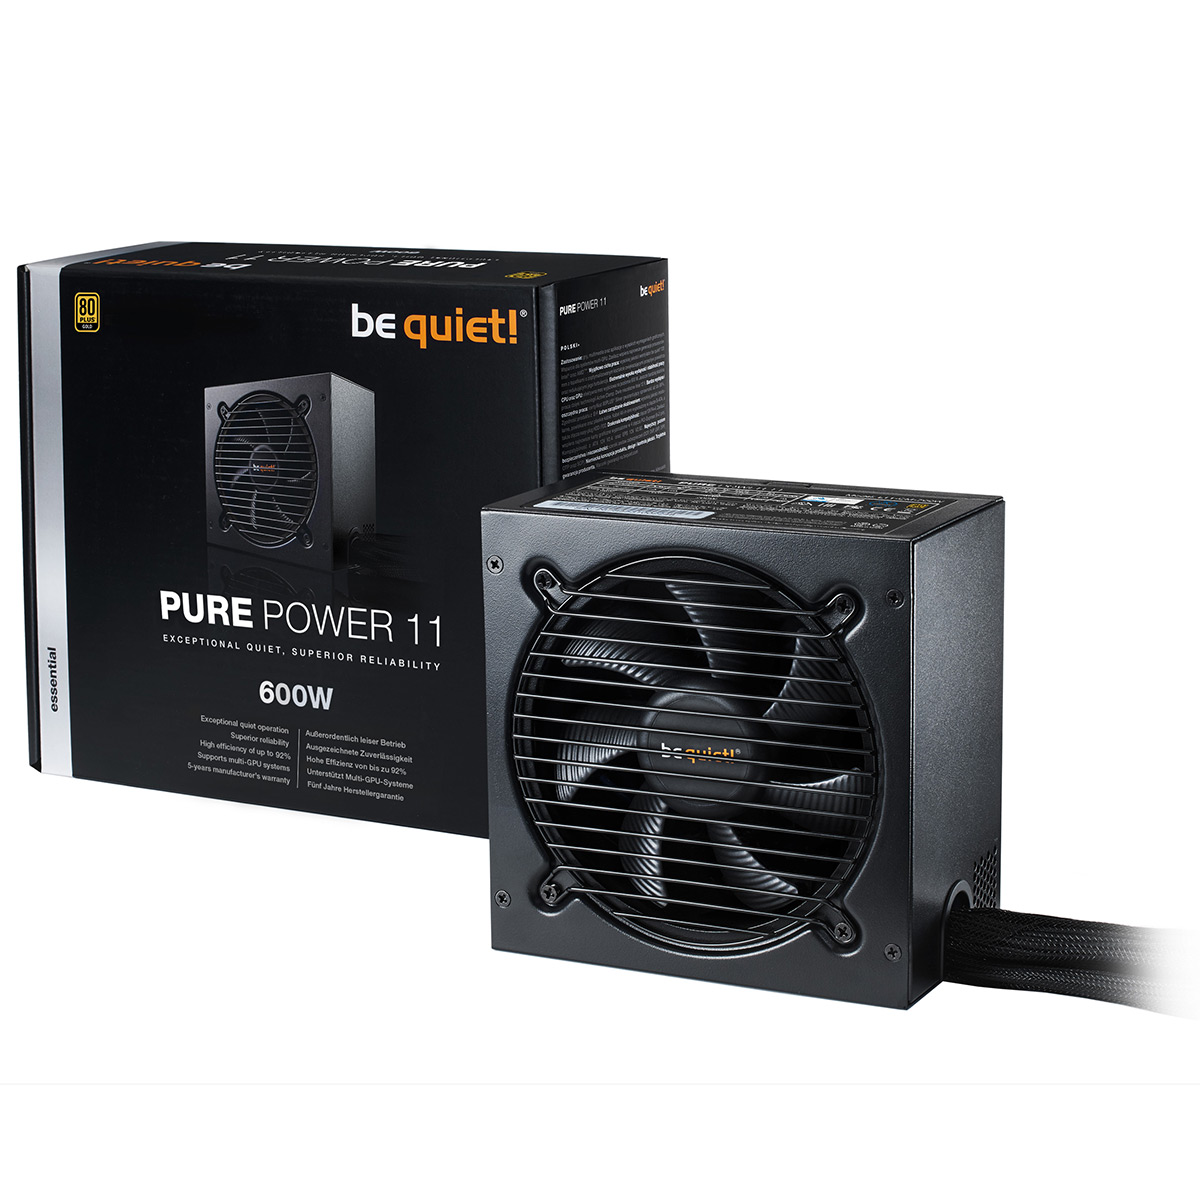 600W Watts Be Quiet Pure Power 11 120mm 80+ Modulaire Gold SLI